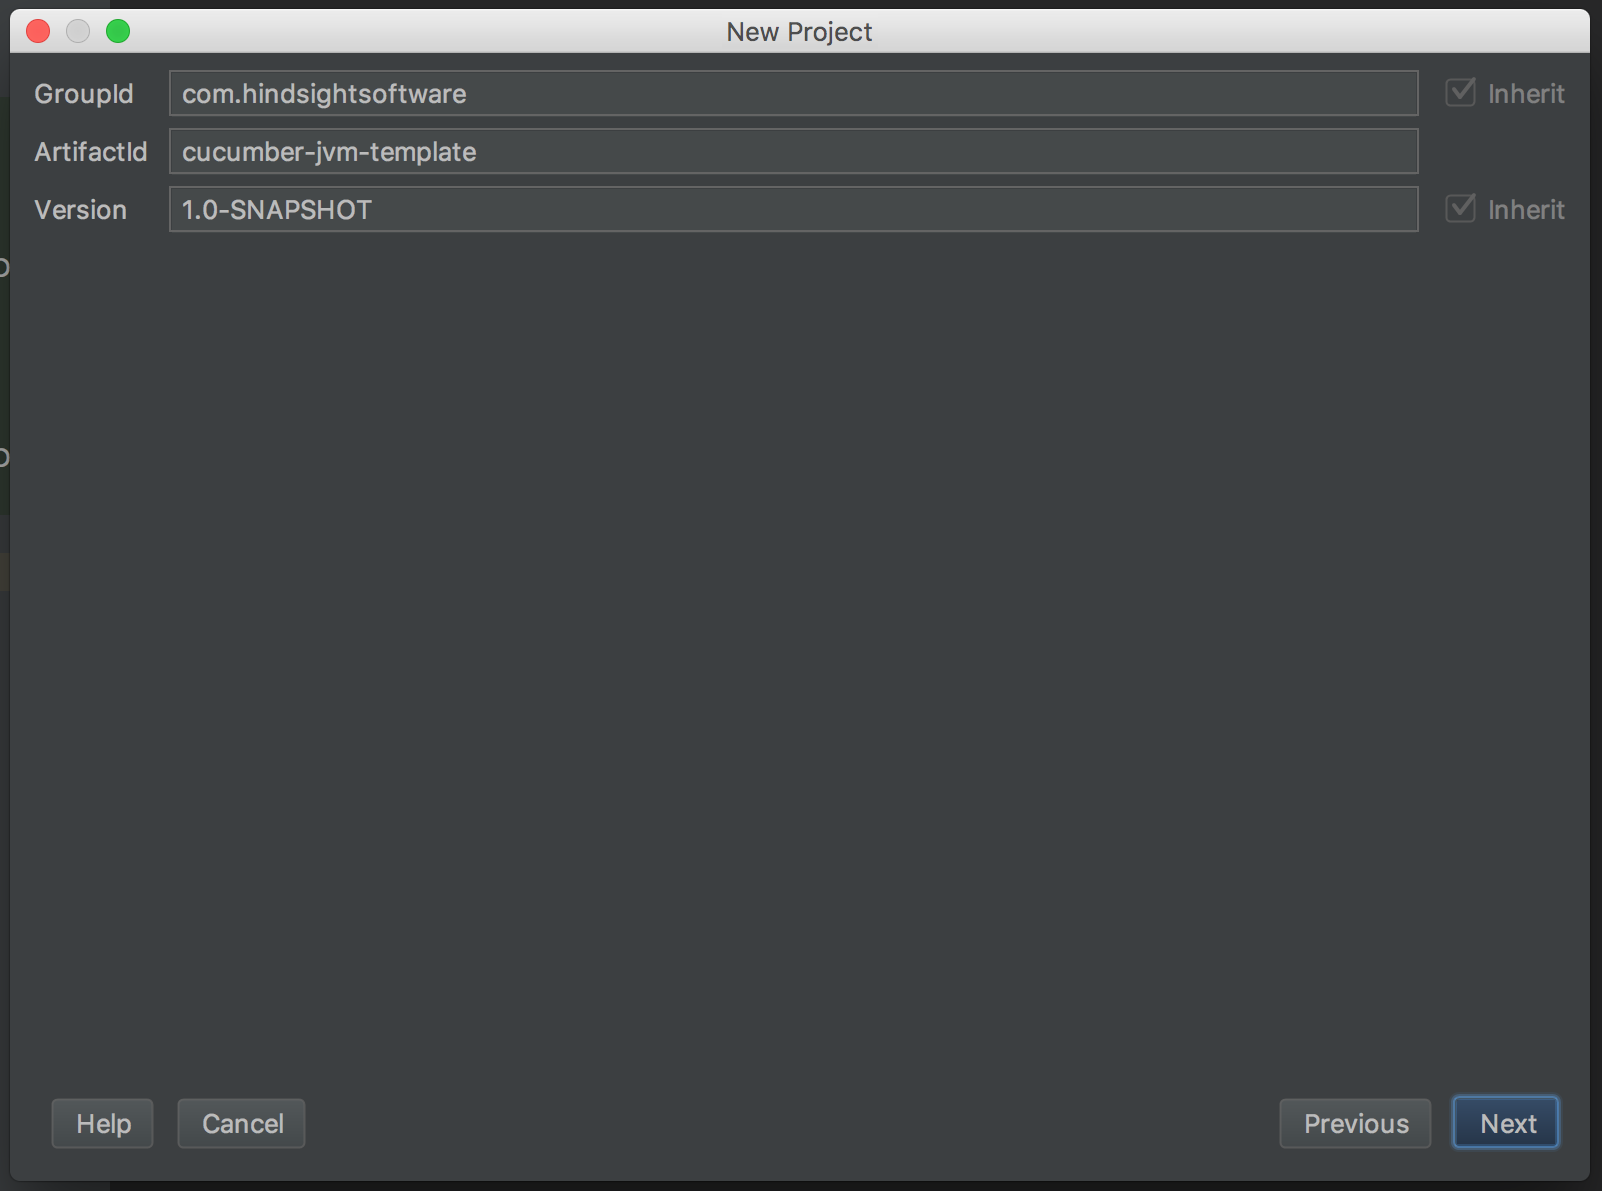 New project, fill in Maven project details screenshot - cucumber testing java - cucumber java